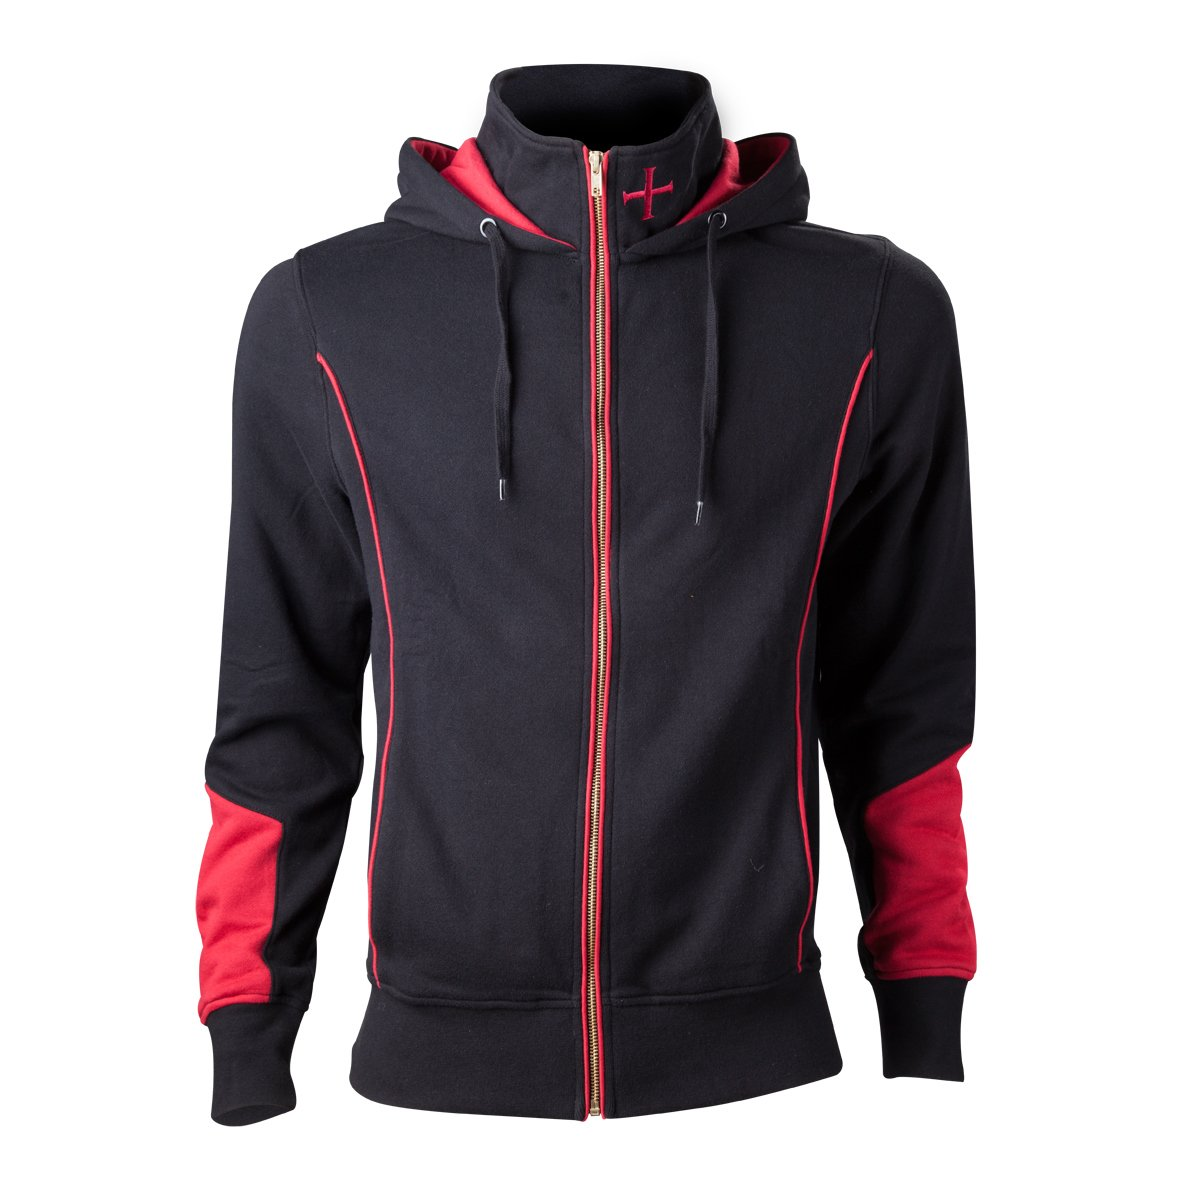 TALLA M. Assassin's Creed Rogue Sudadera Capucha con Cremallera Negro/Rojo